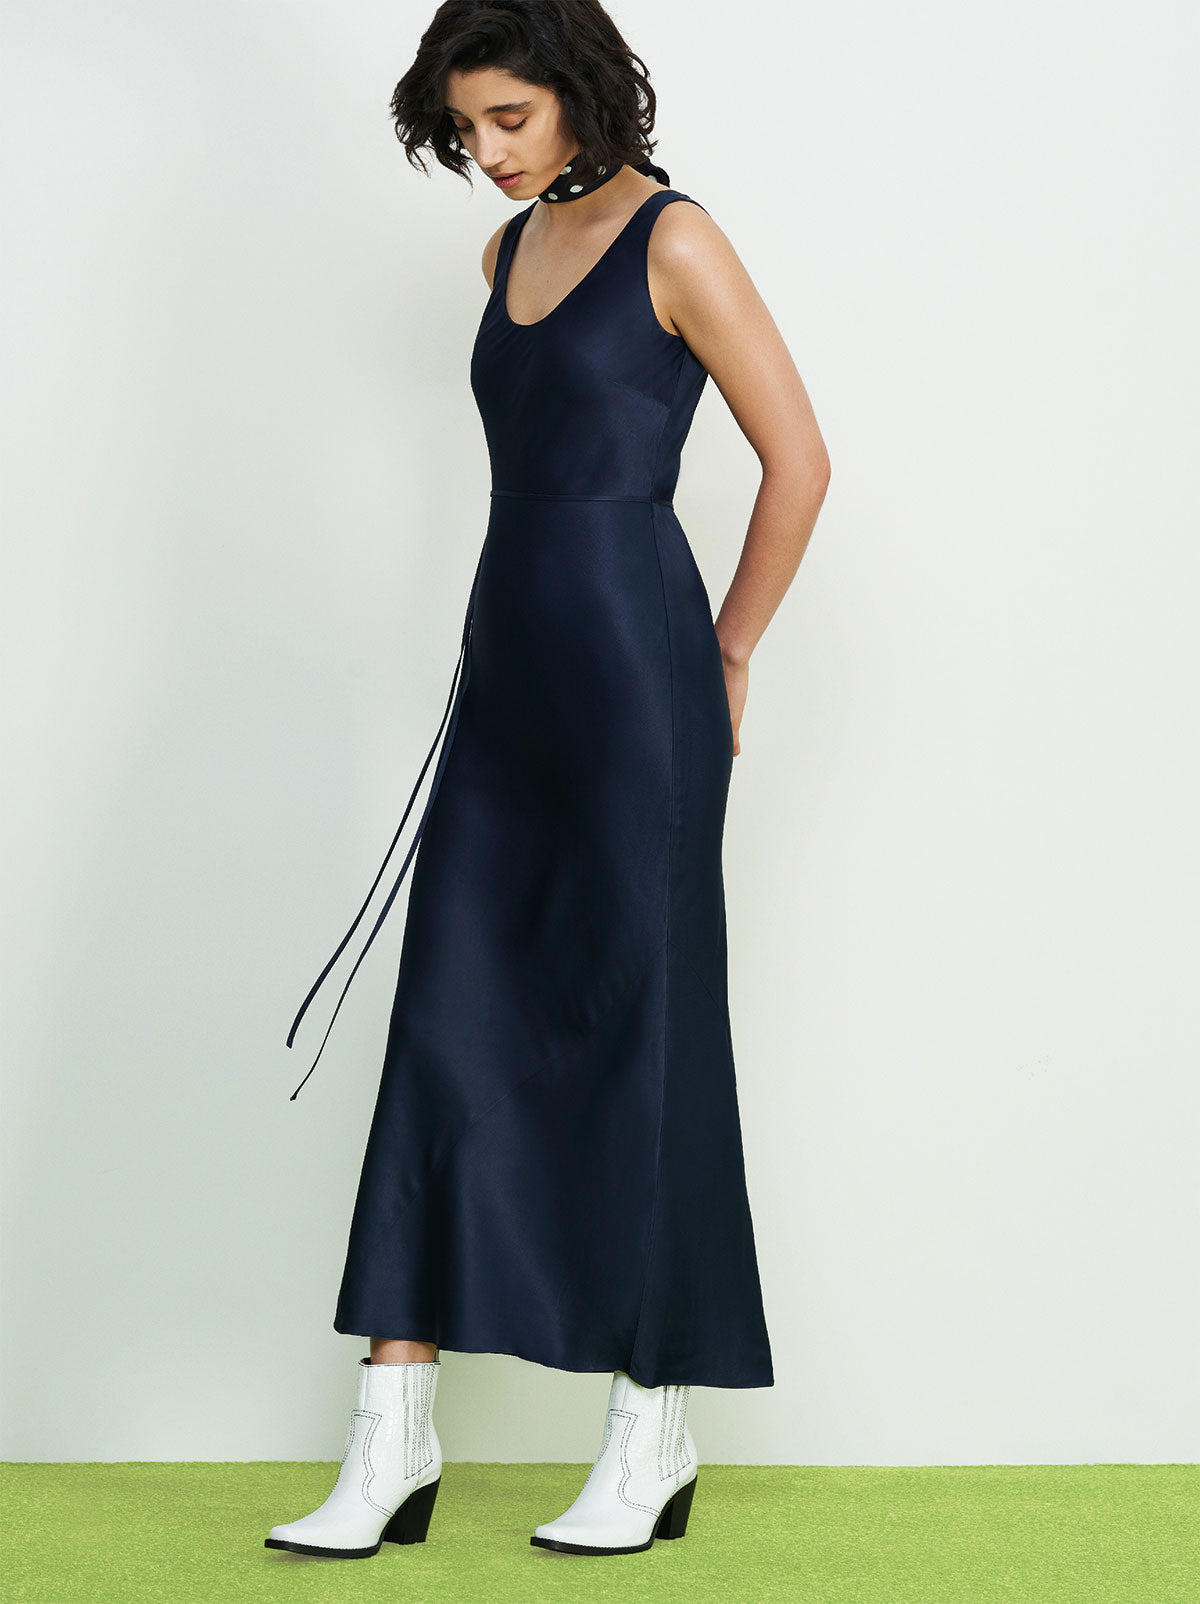 Claire Navy Satin Maxi Dress by KITRI Studio